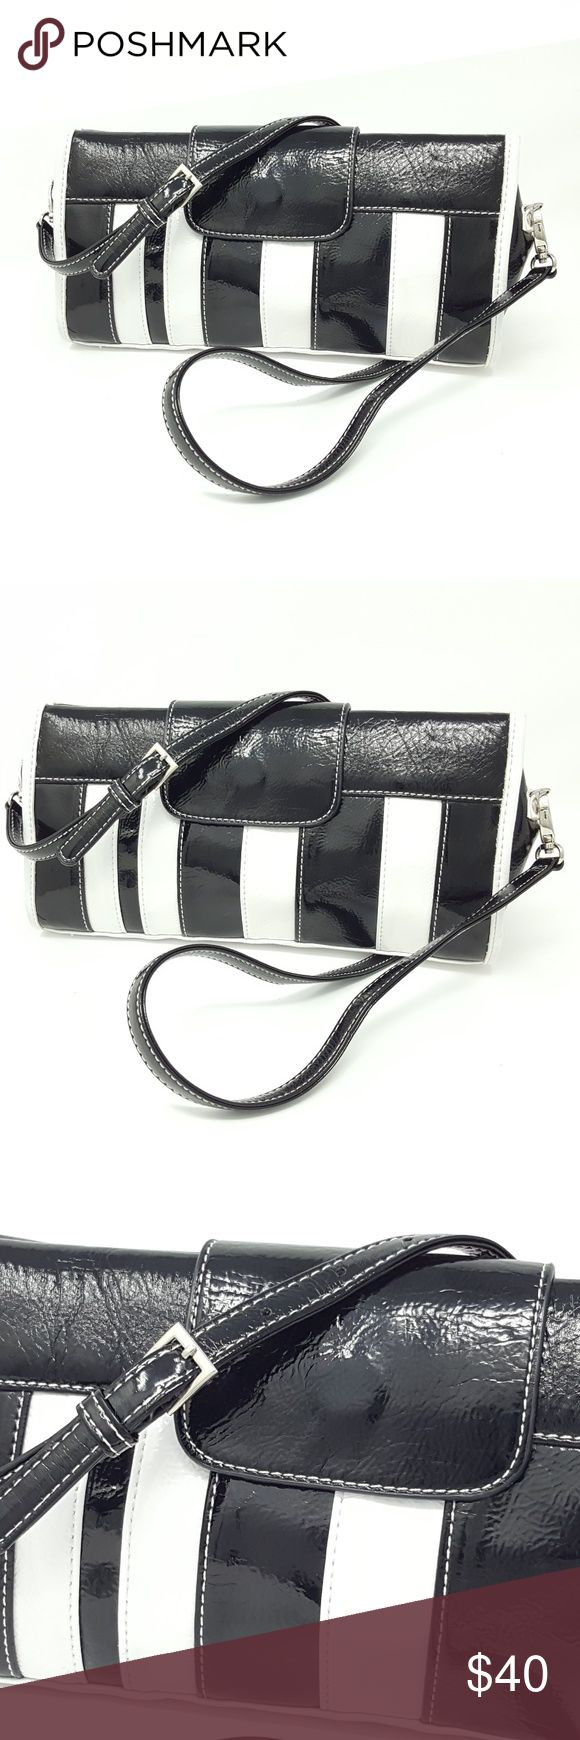 Aldo Black White Soft Crossbody Bag | Clutch Purse Aldo Black & White Soft Shoulder Bag.  Magnetic closure.  Interior is black with a slip in pocket.  Bag is in good condition (see photos).  Enjoy this black and white crossbody bag and feel good ethical fashion by rescuing a vintage item from the landfill.    This item is PRE-OWNED. Aldo Bags Crossbody Bags